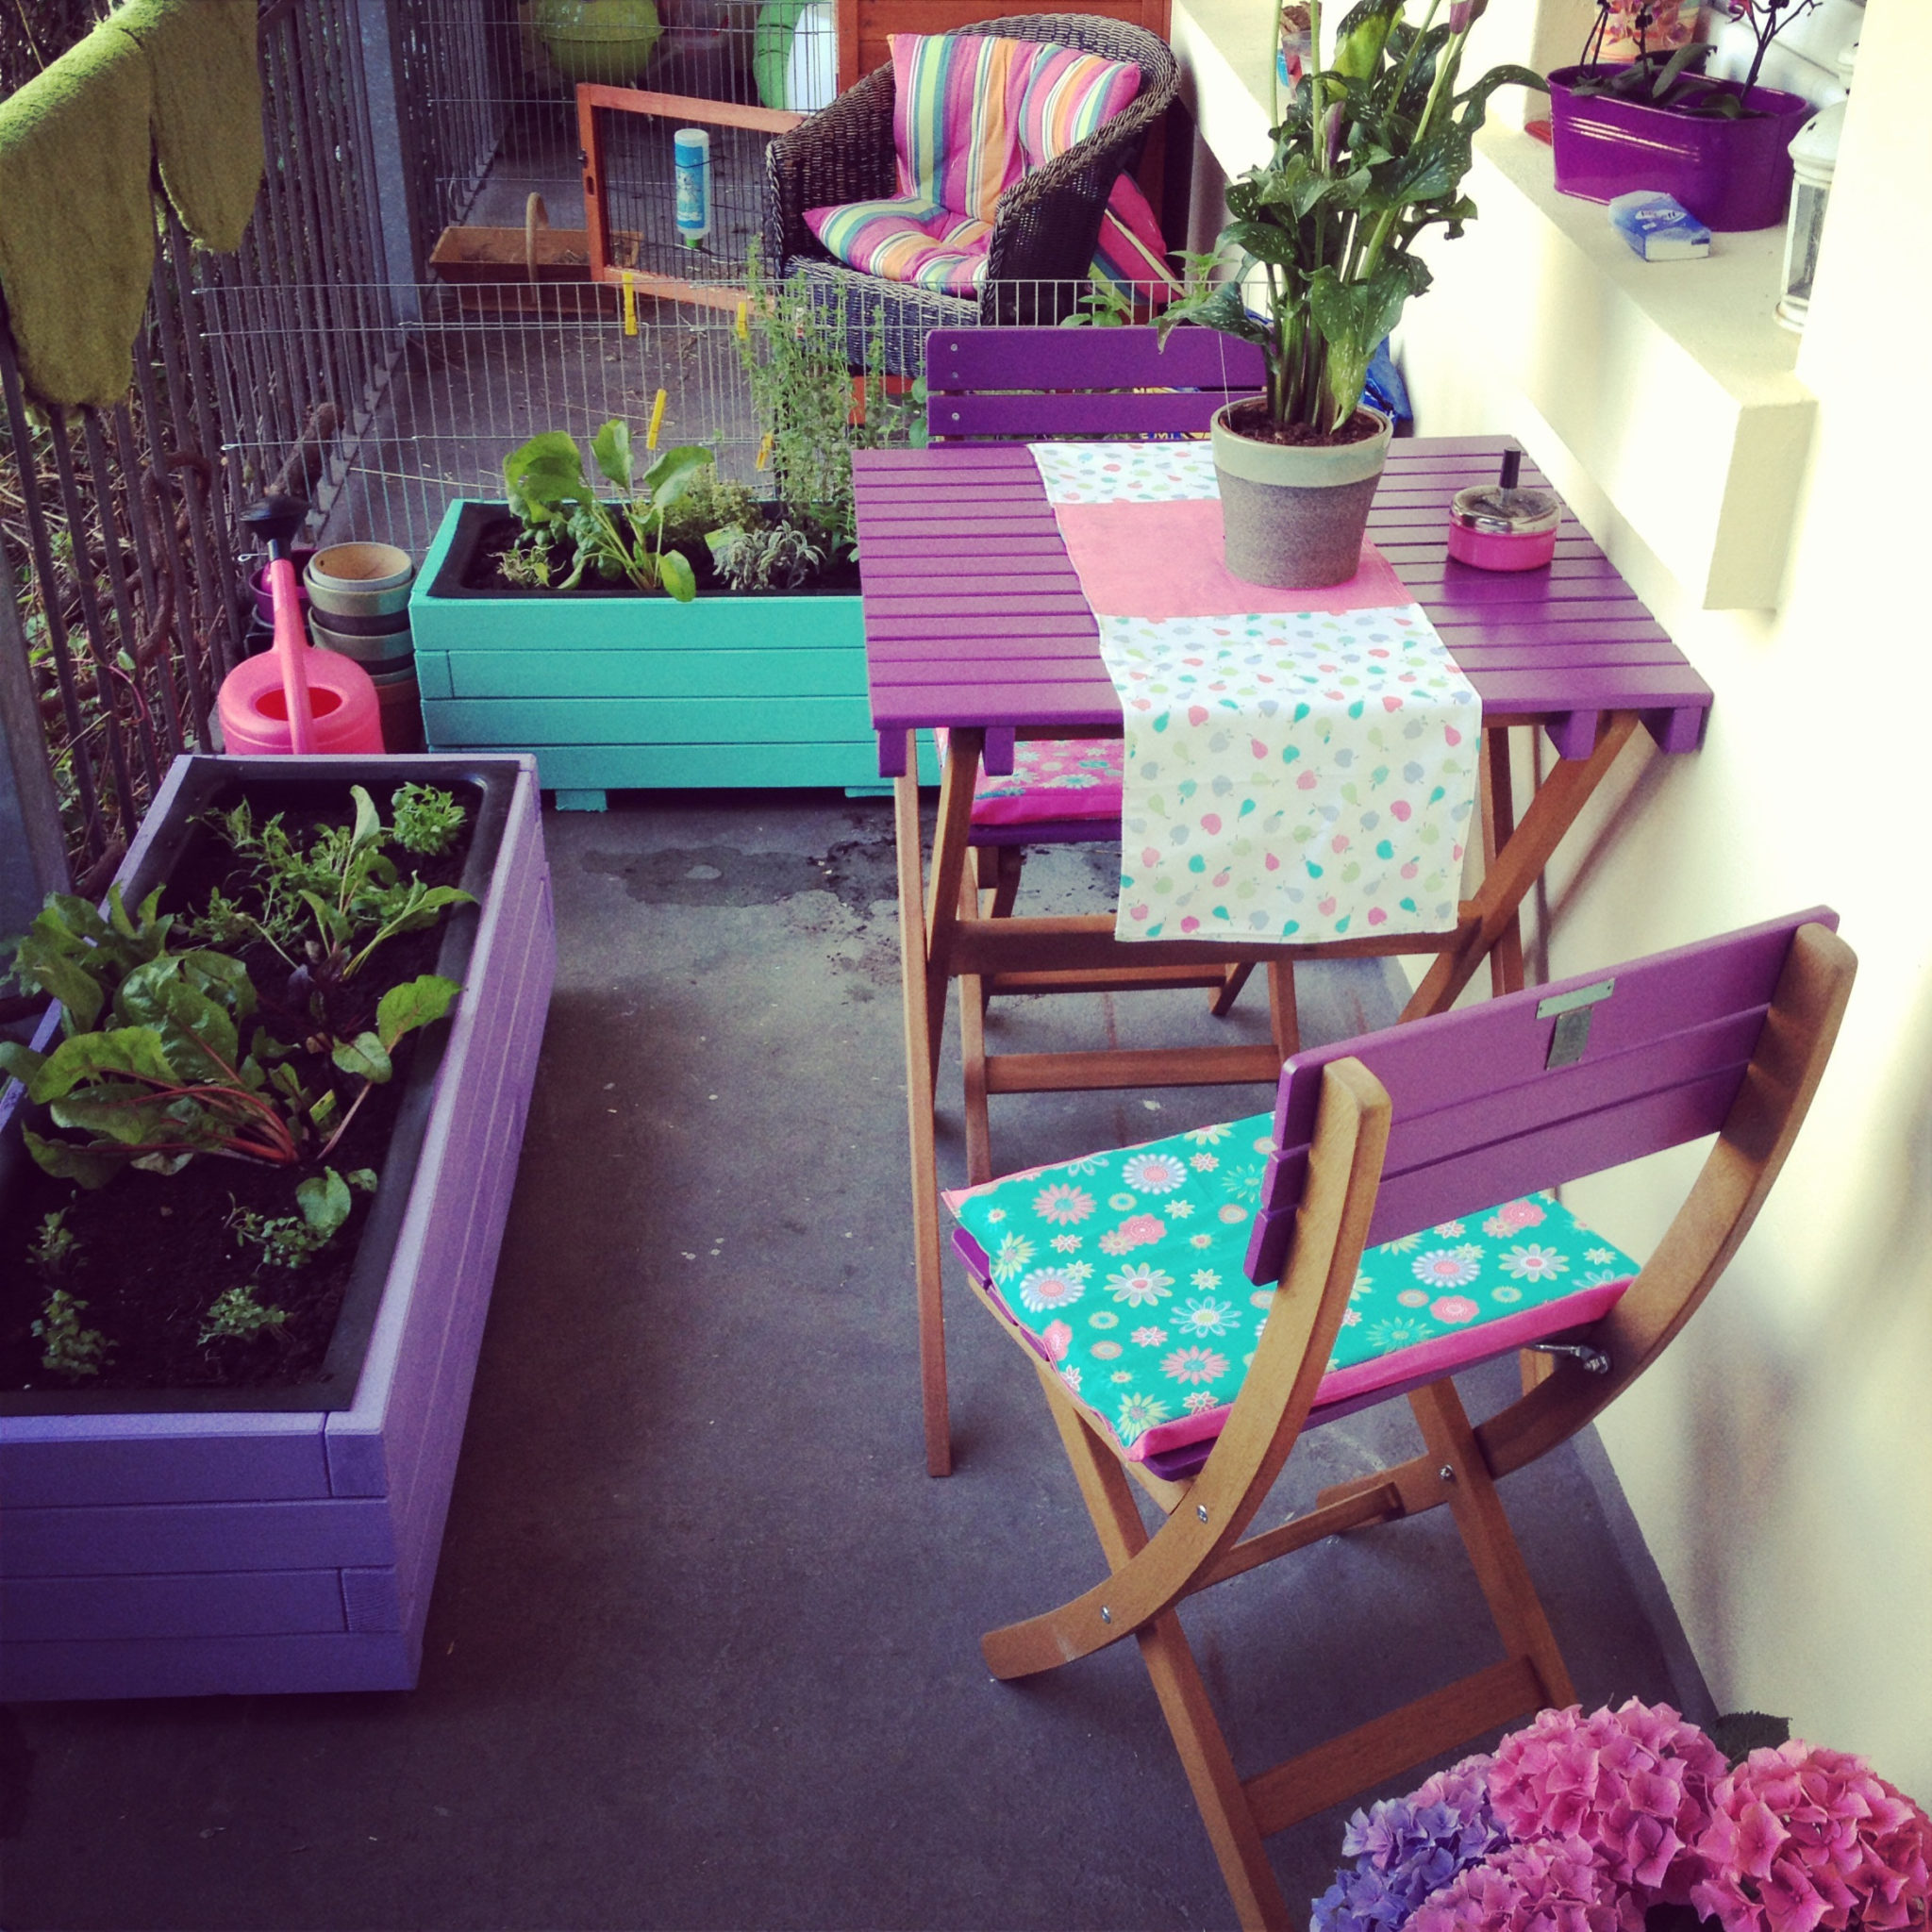 A charming tiny purple balcony